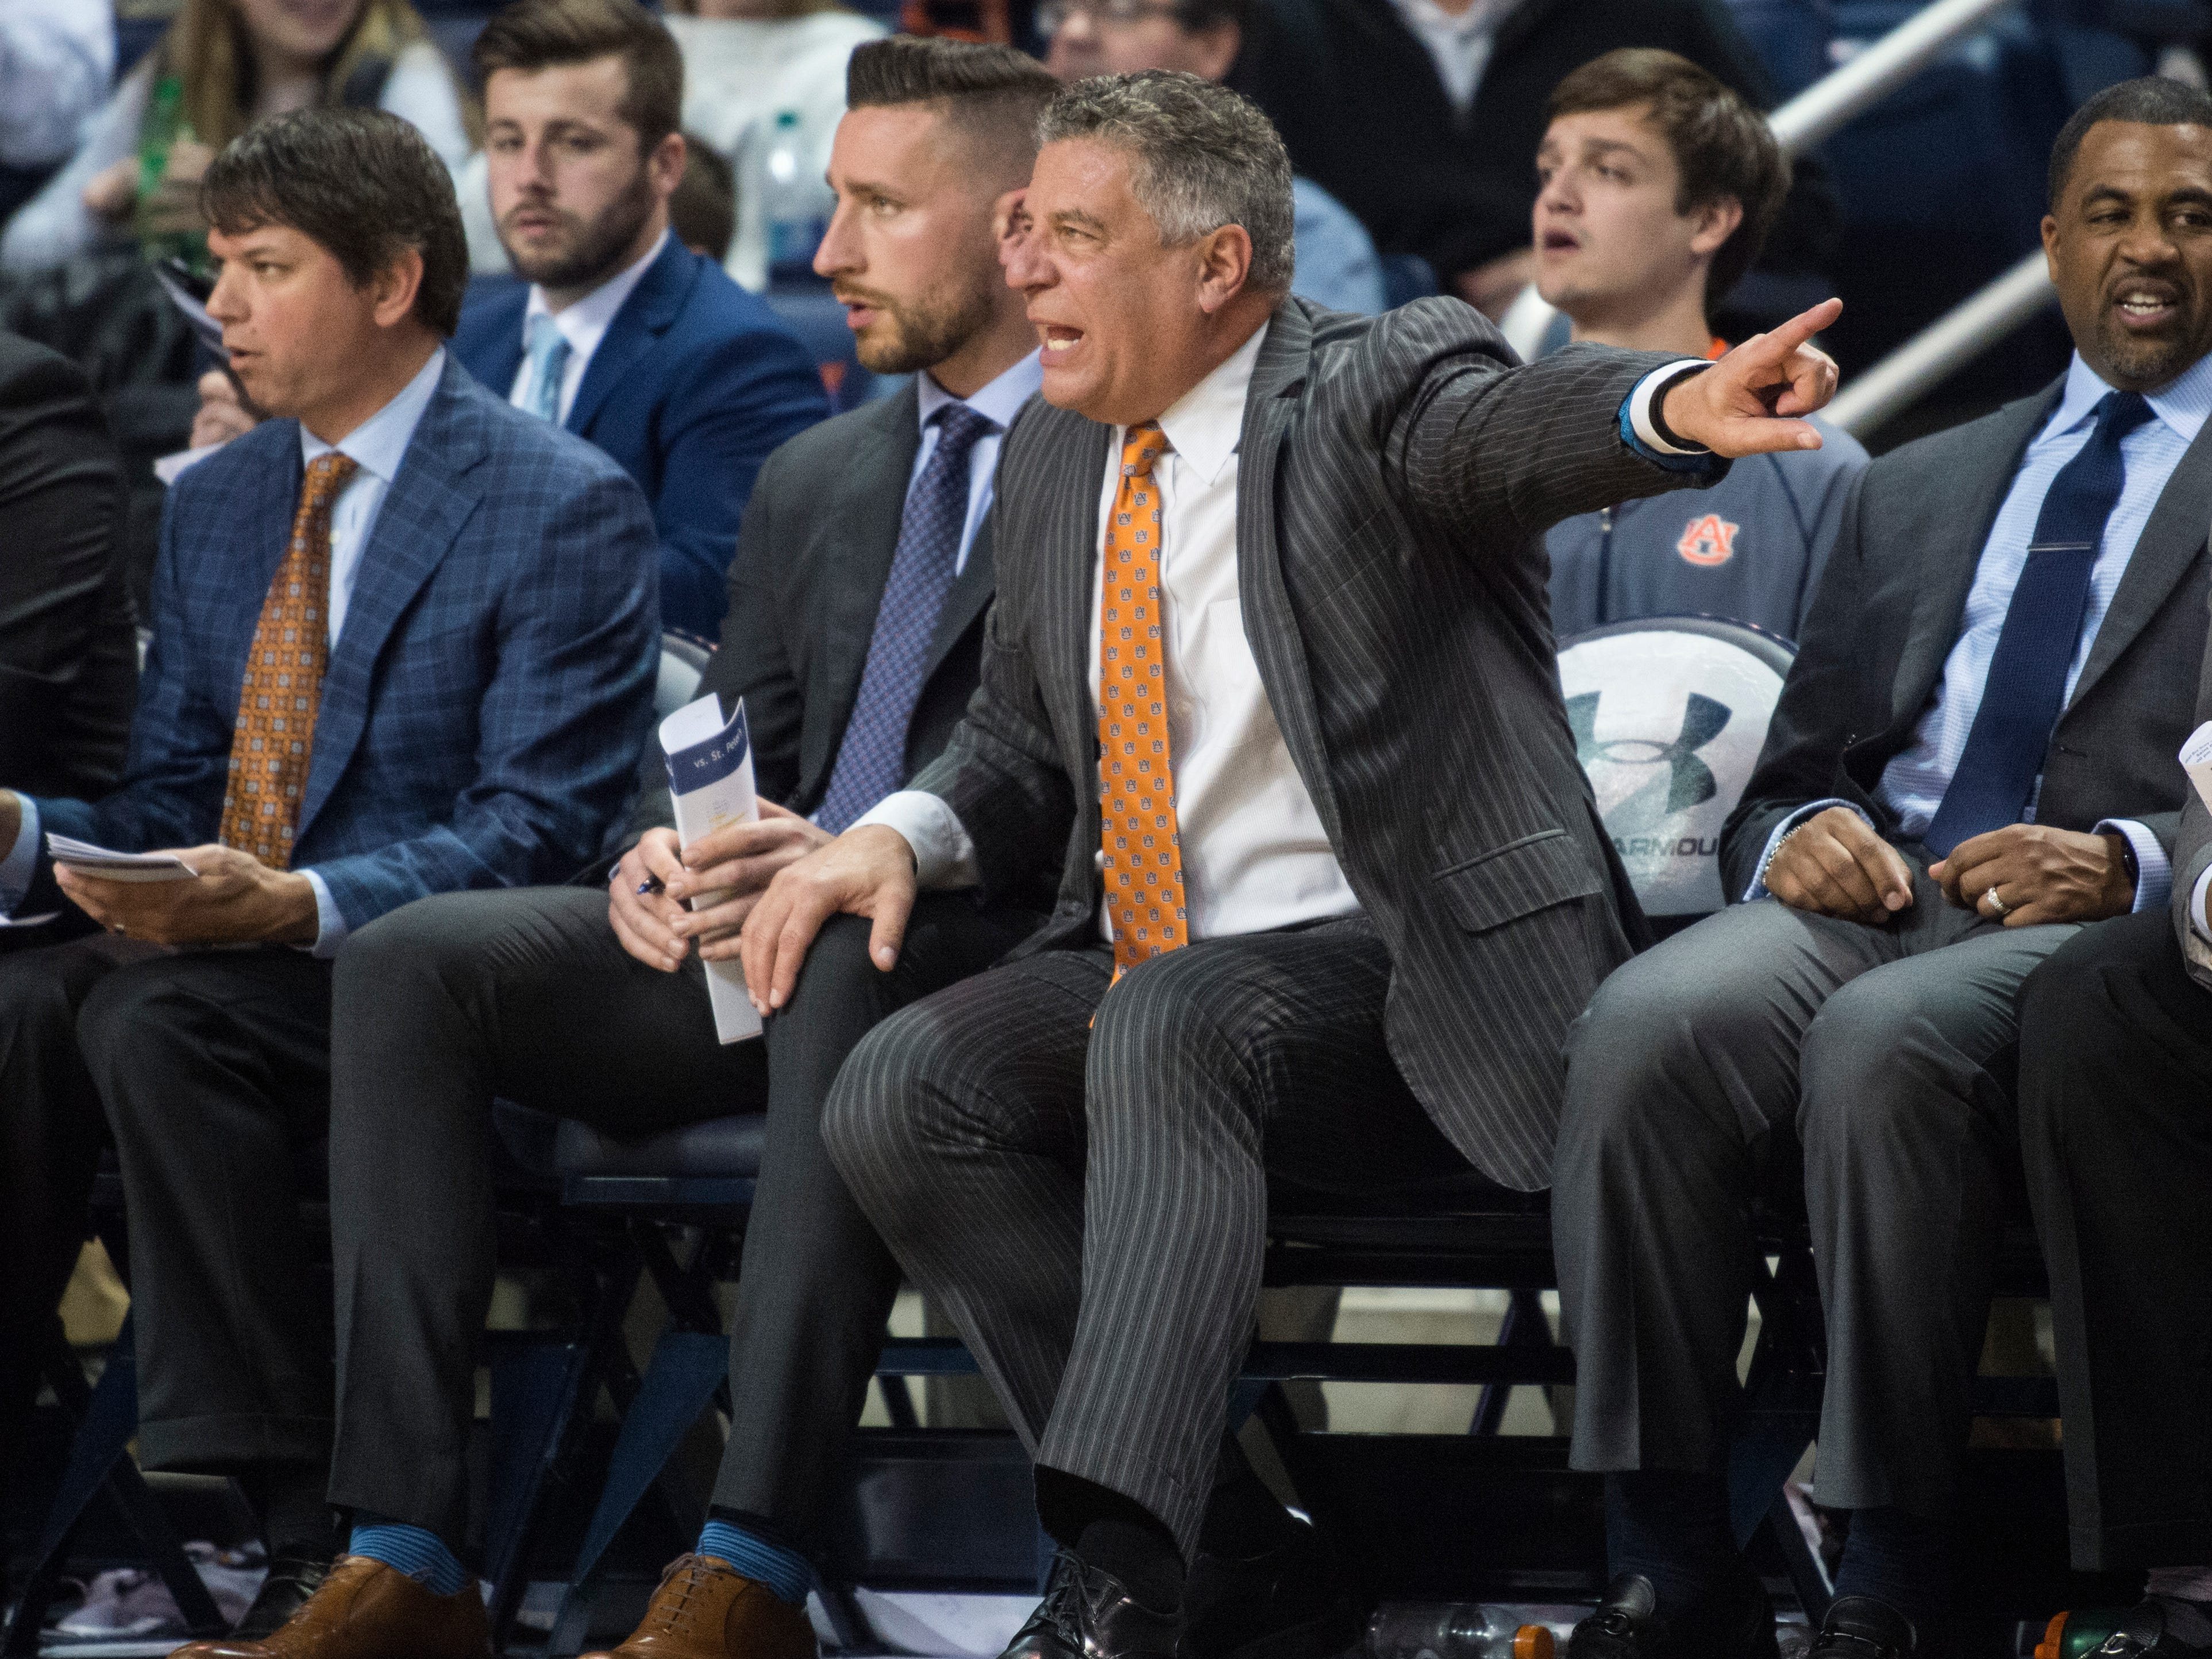 Auburn head coach Bruce Pearl yells at his team from the bench at Auburn Arena in Auburn, Ala., on Wednesday, Nov. 28, 2018. Auburn defeated Saint Peter's 99-49.